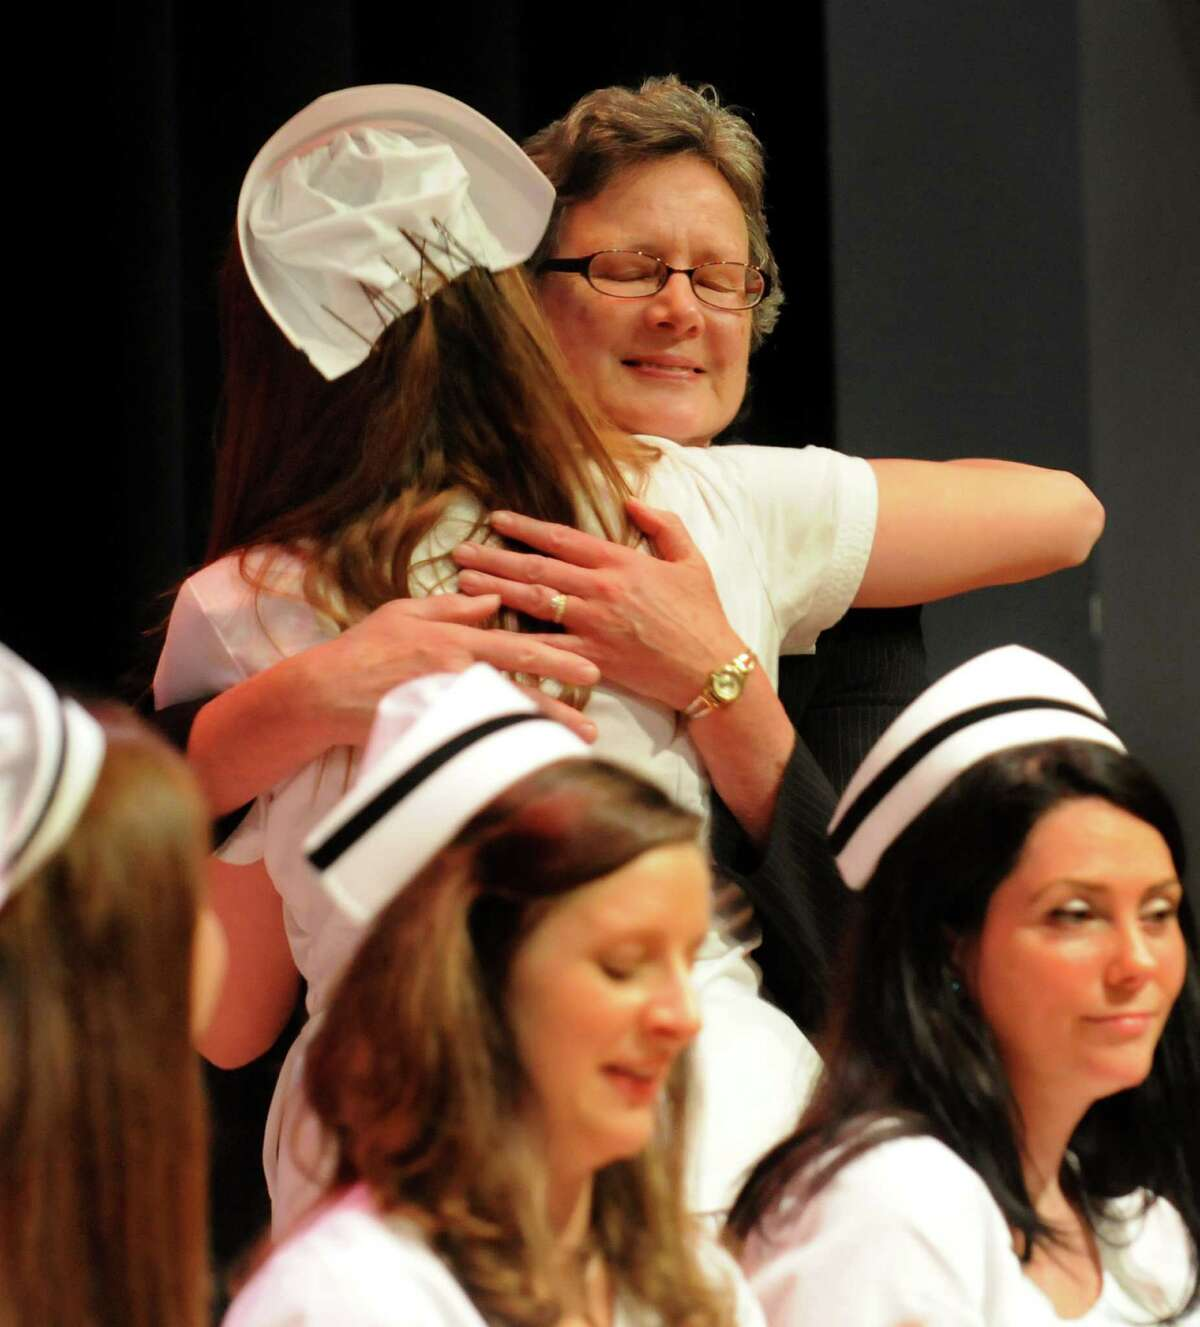 Susan Birkhead, director of the School of Nursing, top right, receives a hug from graduate Amanda Milem during the Samaritan Hospital School of Nursing college commencement on Thursday, May 9, 2013, at Hudson Valley Community College in Troy, N.Y. (Cindy Schultz / Times Union)